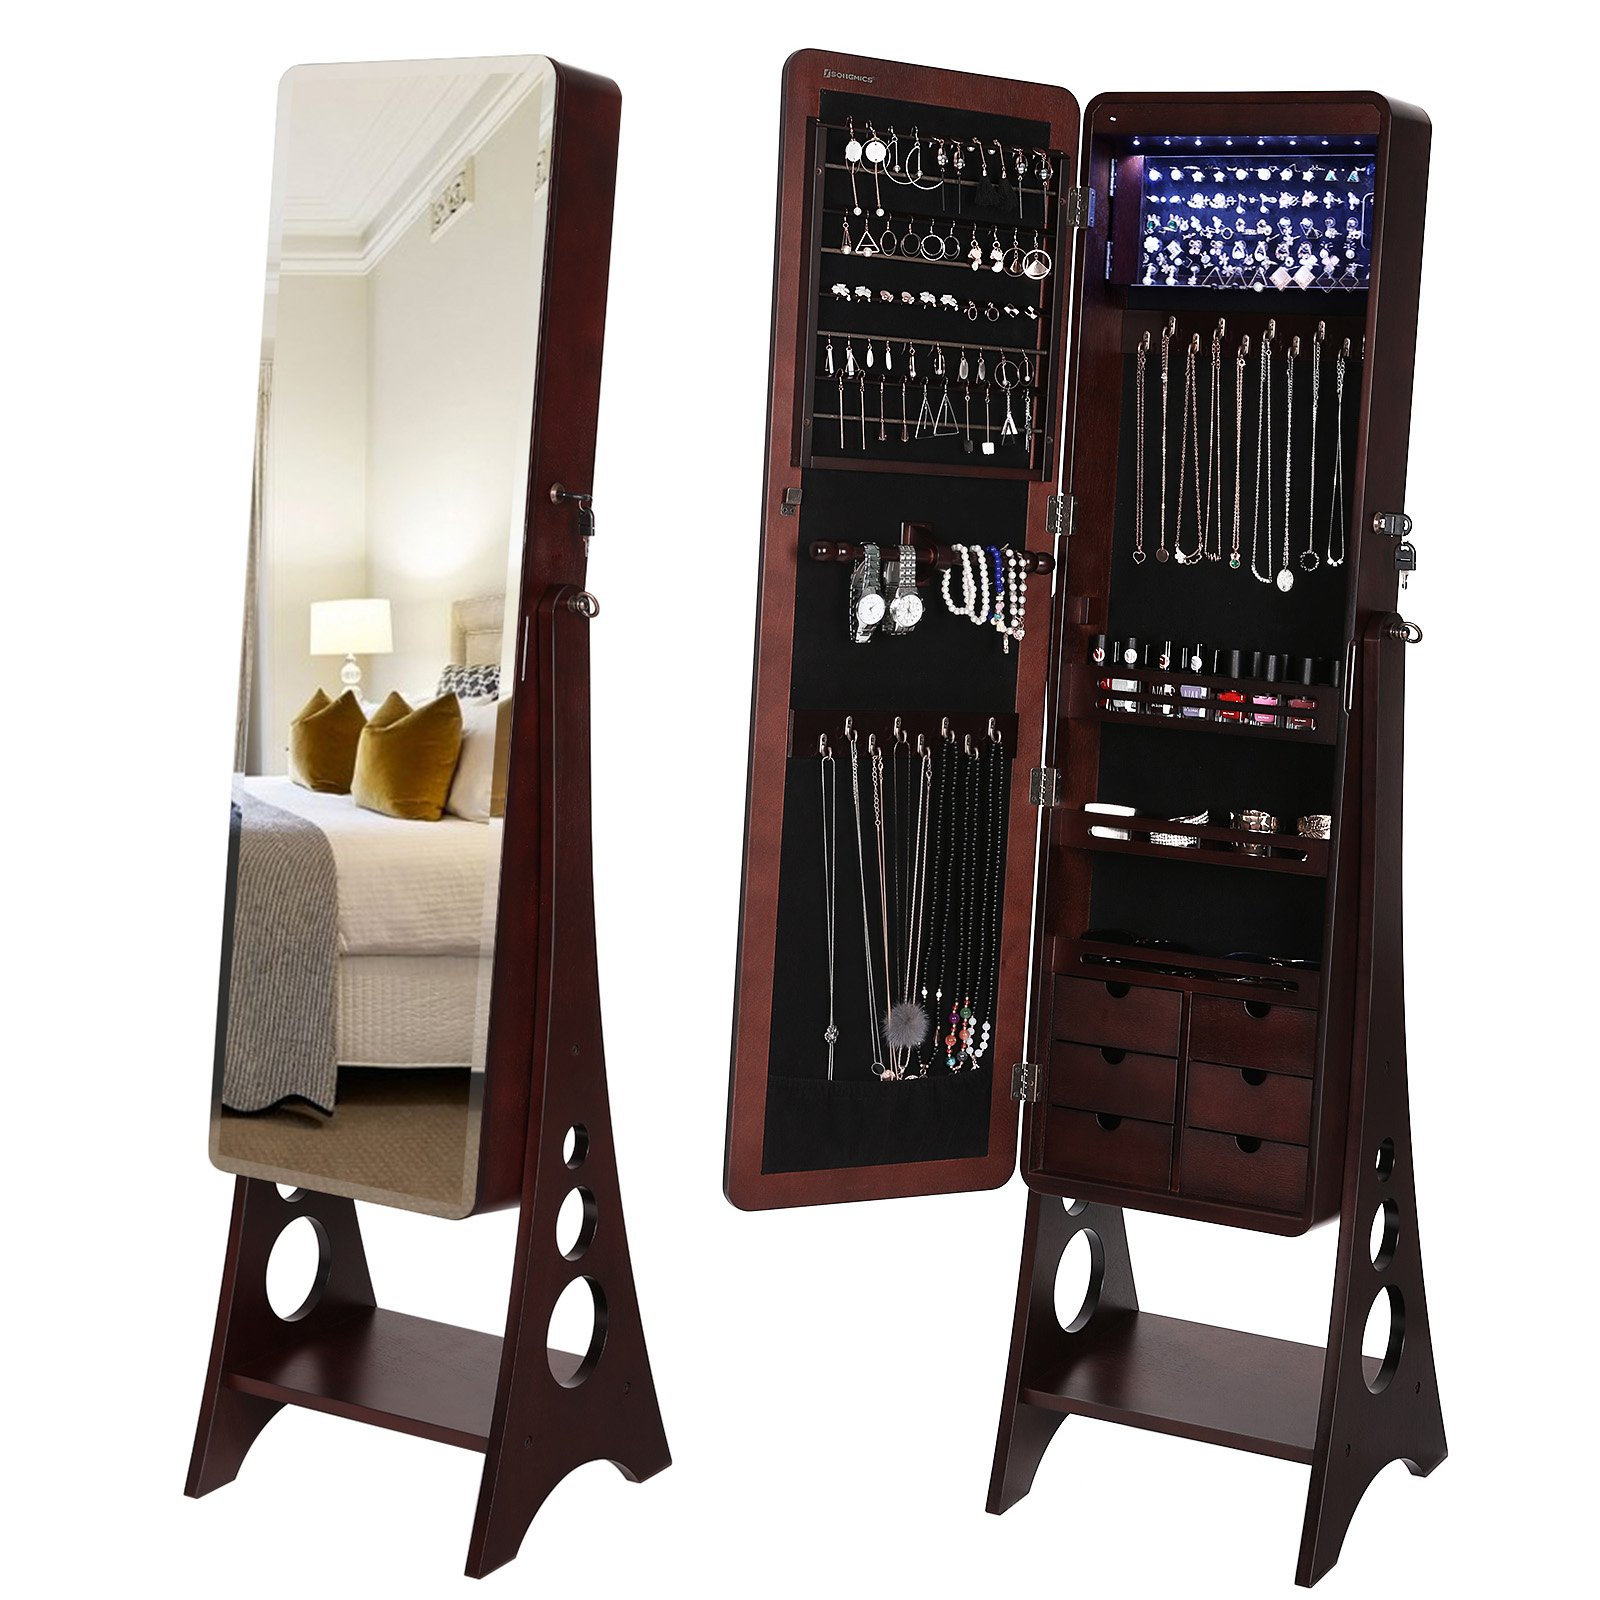 SONGMICS 8 LEDs Jewelry Cabinet with Bevel Edge Full Length Mirror, Lockable Floor Standing Jewelry Armoire Organizer, 6 Drawers Brown UJJC89K